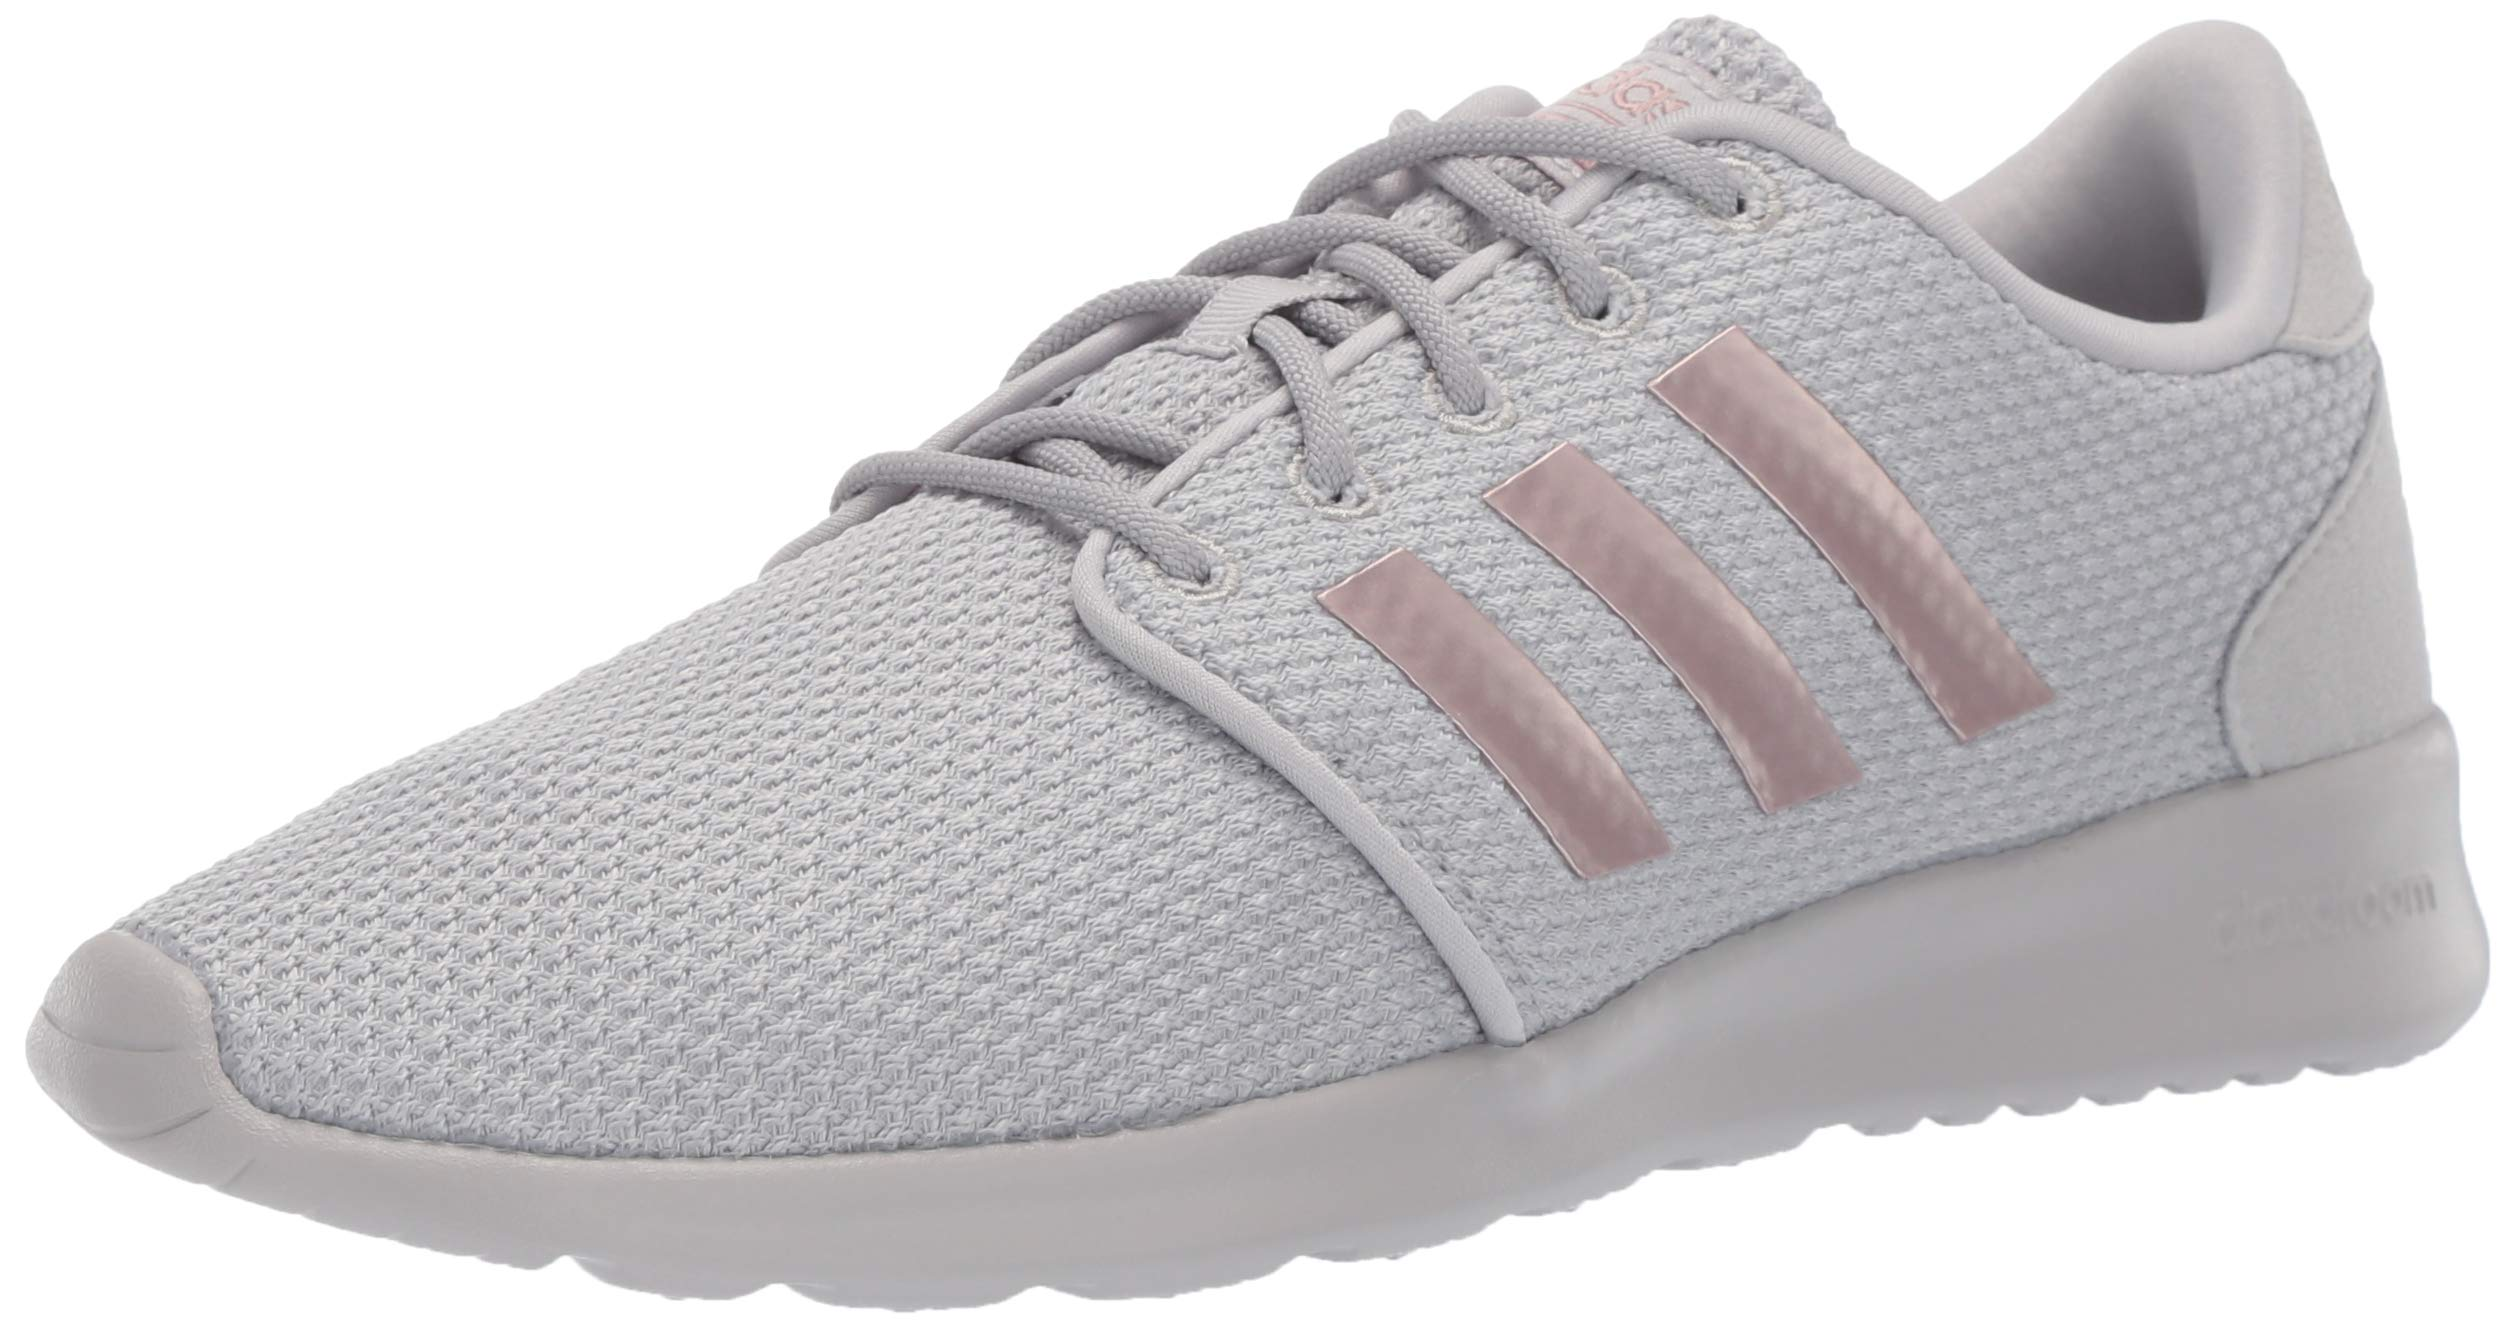 adidas Women's Cloudfoam QT Racer, Light Granite/Copper Metallic/Grey, 11 M US by adidas